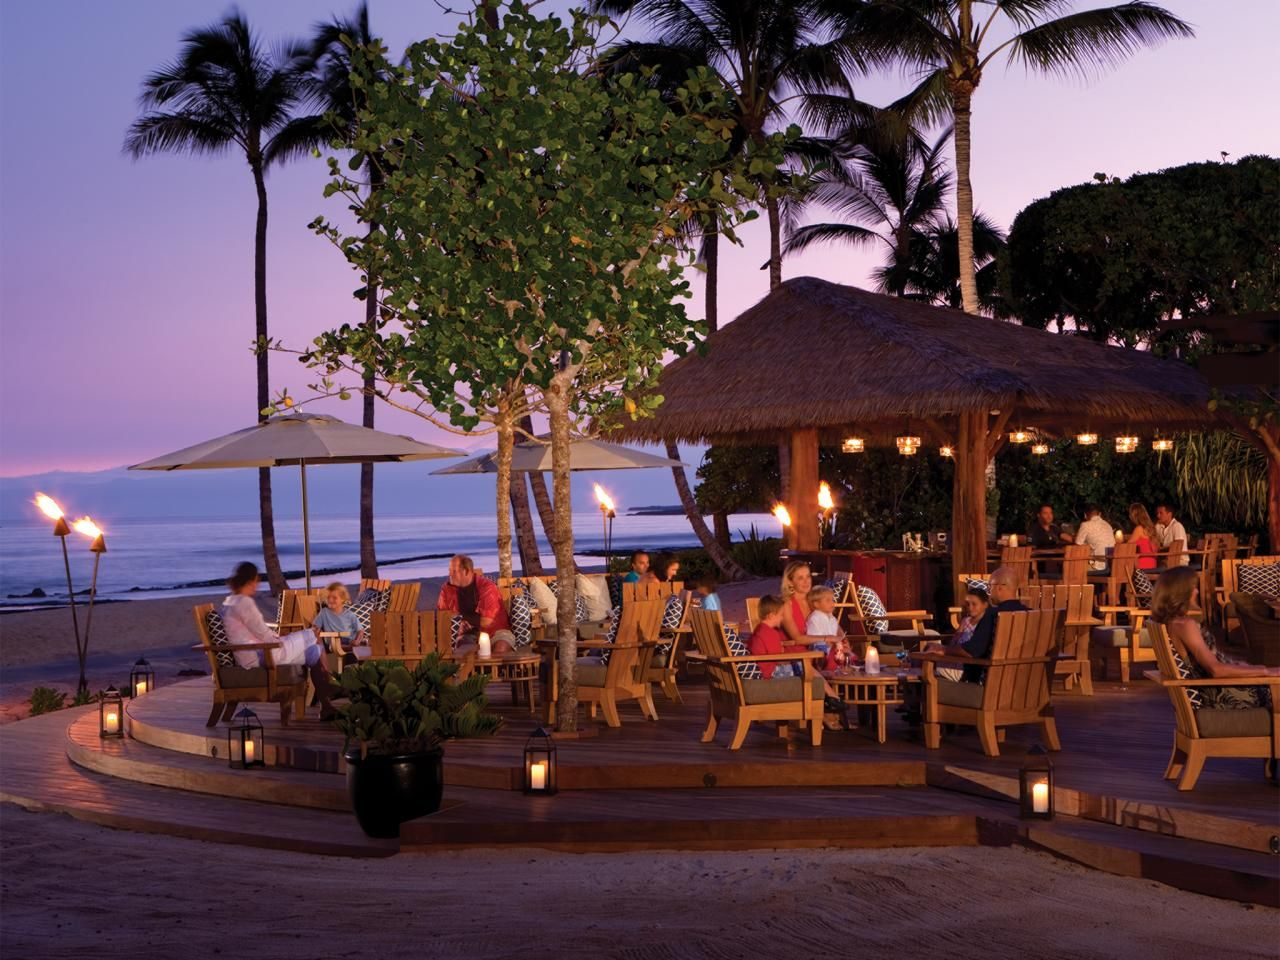 Diners At The Beach Tree Restauant Is Perfect Romantic Spot With Amazing Ocean Views And A Great Vantage Point To Watch Sun Set